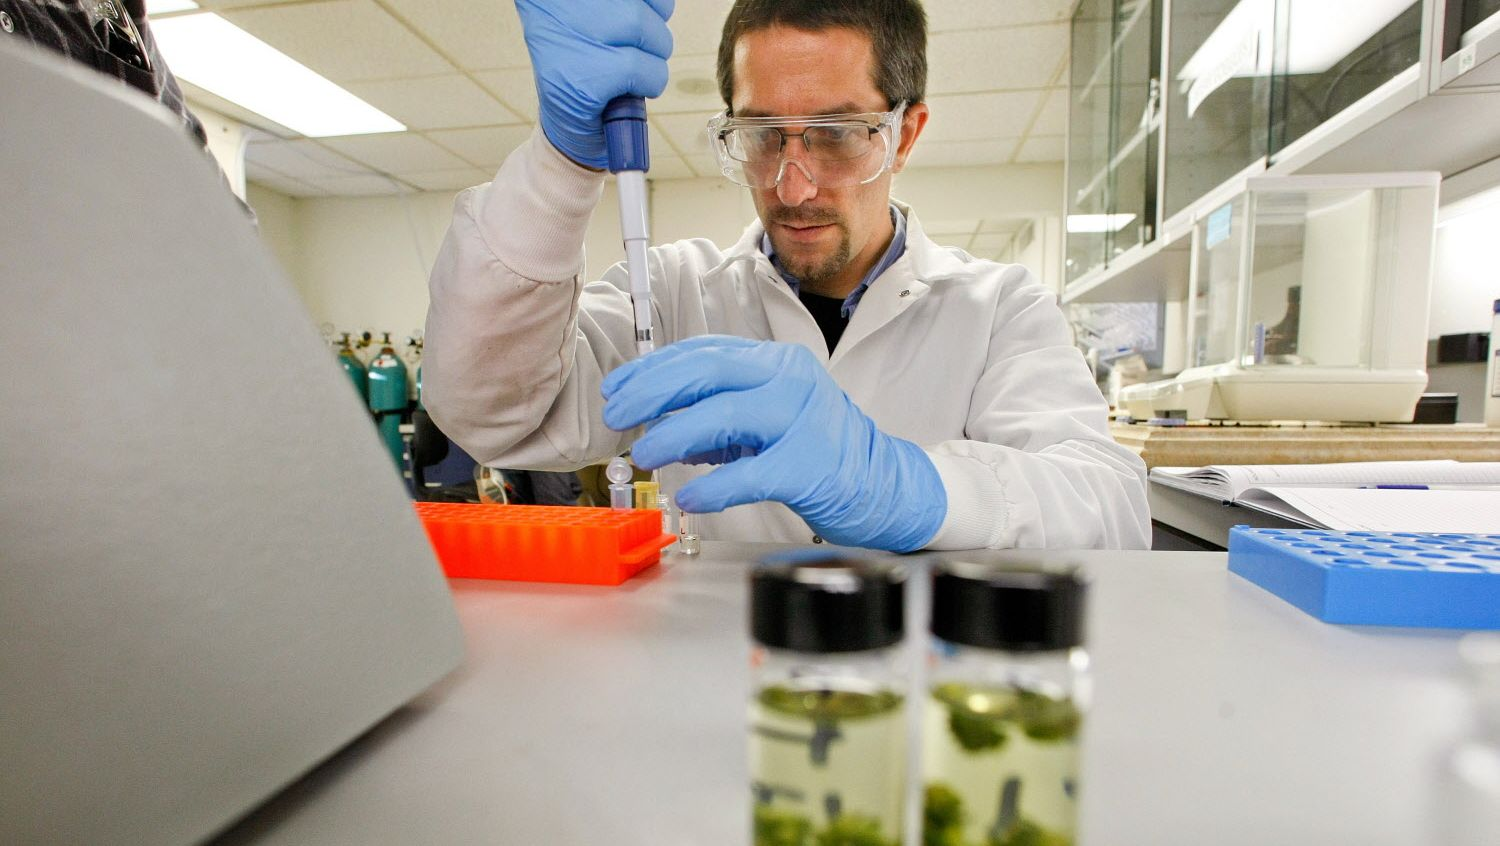 Technician Mark Raber prepares marijuana samples to be analyzed for potency and purity at the Werc Shop on December 16, 2011. (Mel Melcon/Los Angeles Times)